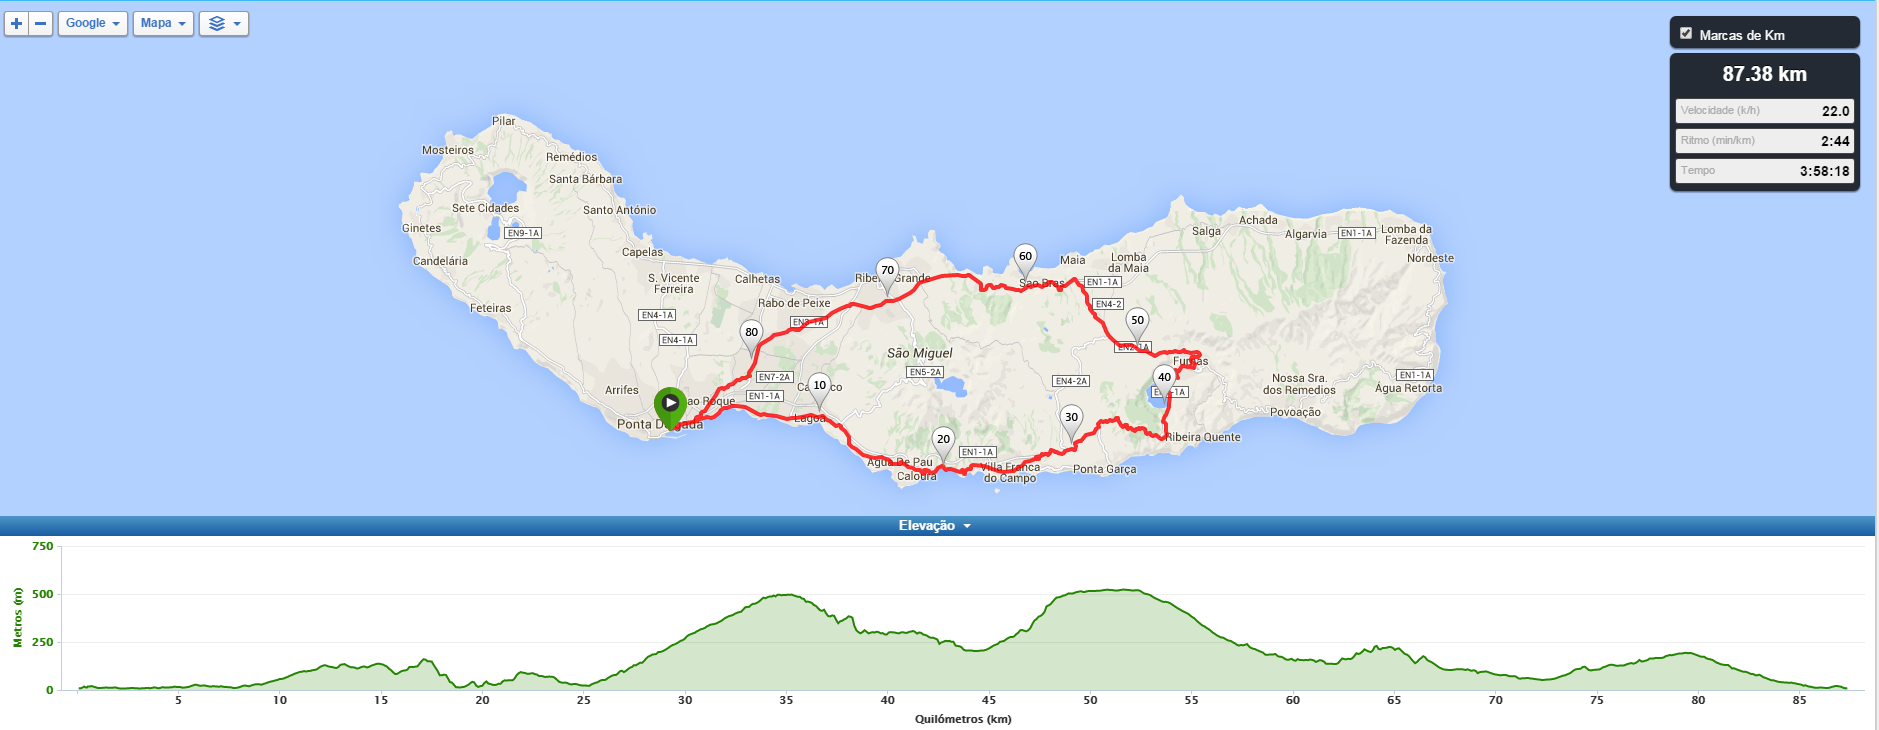 Road Bike Tour - Furnas Cozido Tour - map